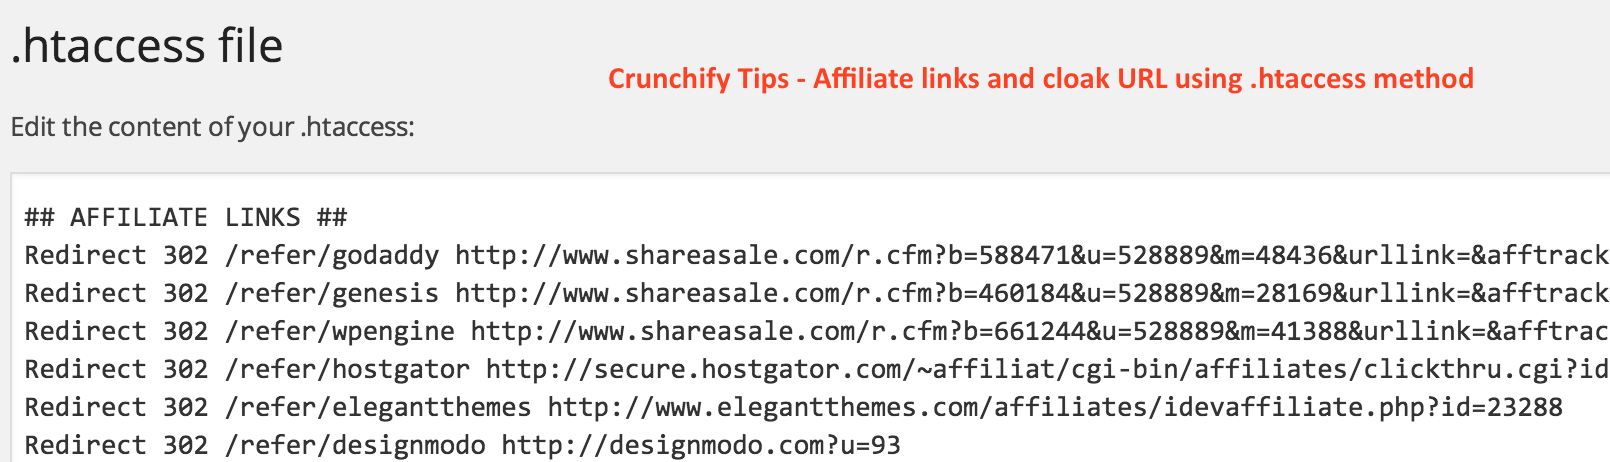 Crunchify Tips - Affiliate links and cloak URL using htaccess method